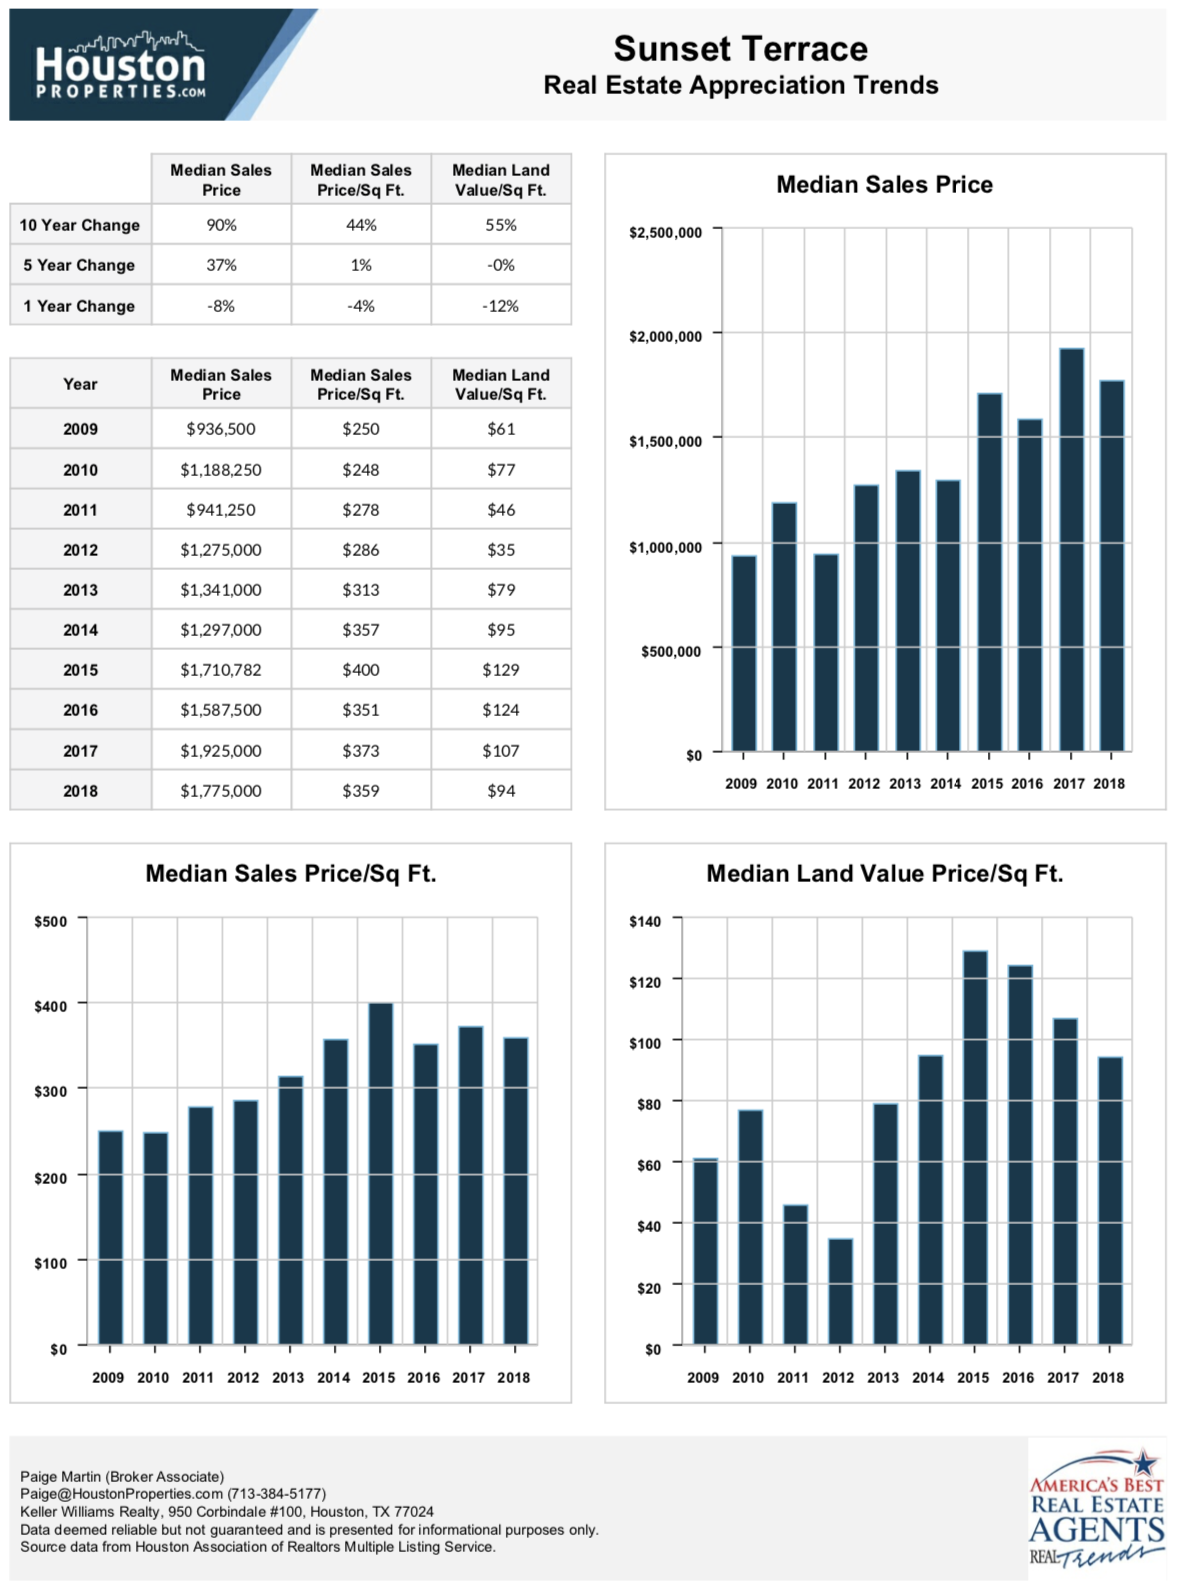 Sunset Terrace 10 Year Real Estate Appreciation Rates